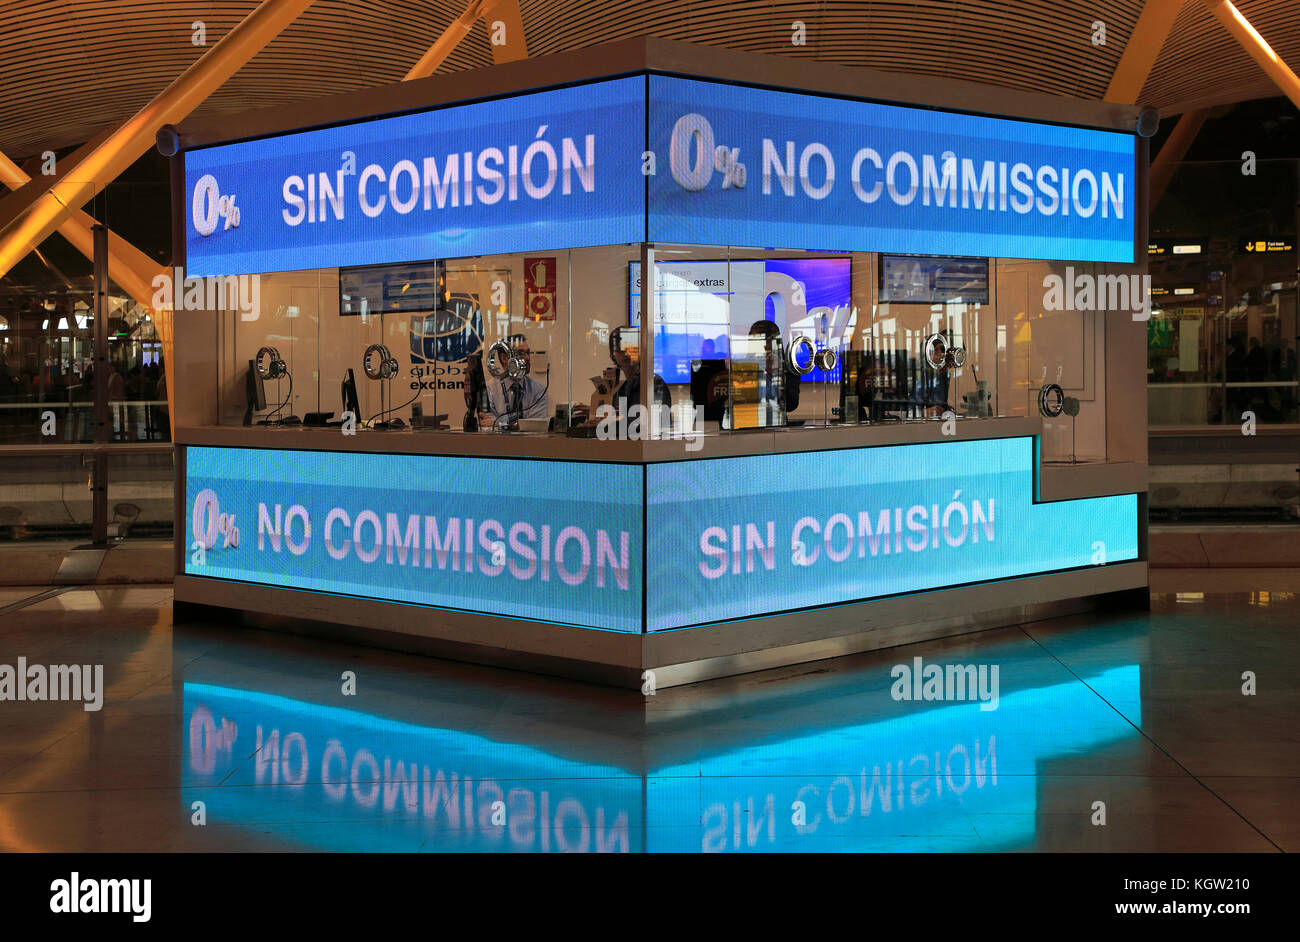 Airport booth photos airport booth images alamy - Bureau de change montpellier aeroport ...